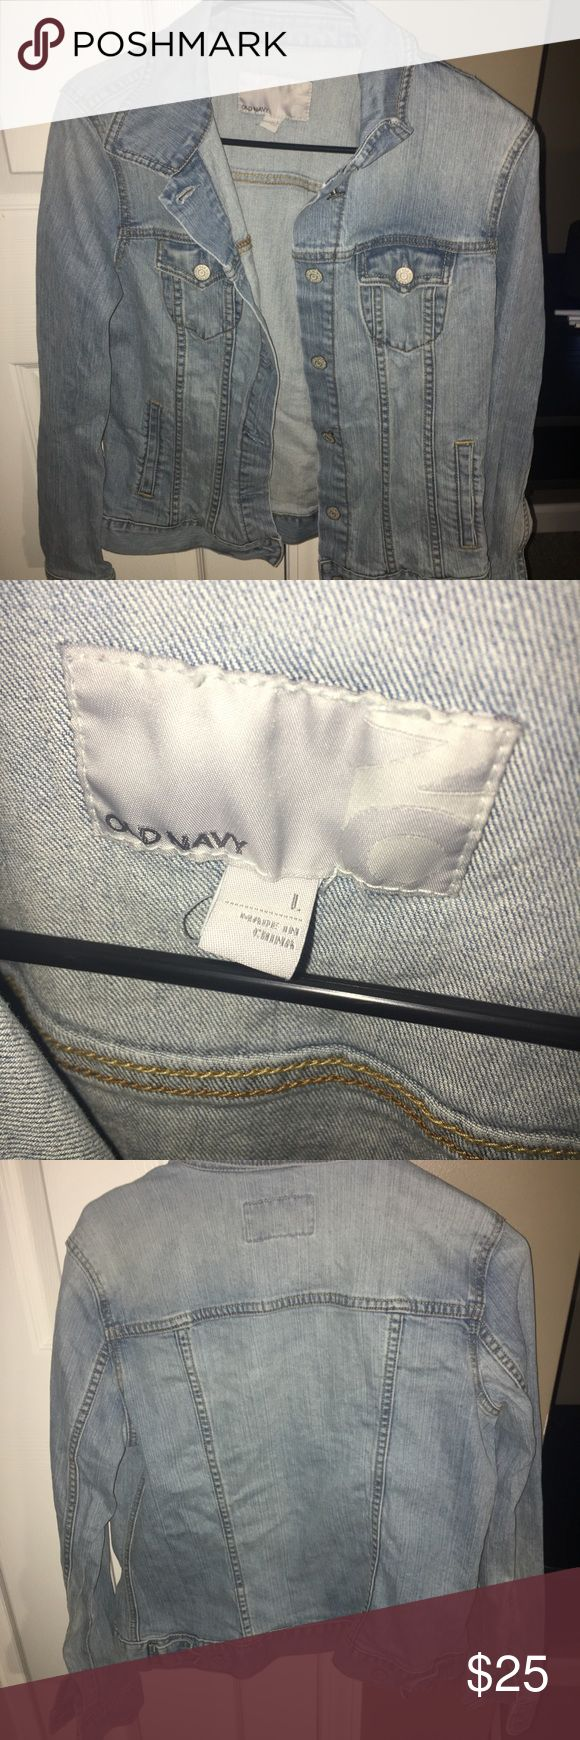 Old Navy Jean Jacket It's a size large jean jacket. Hardly ever worn and unfortunately now it's too big. Still in great condition! Old Navy Jackets & Coats Jean Jackets